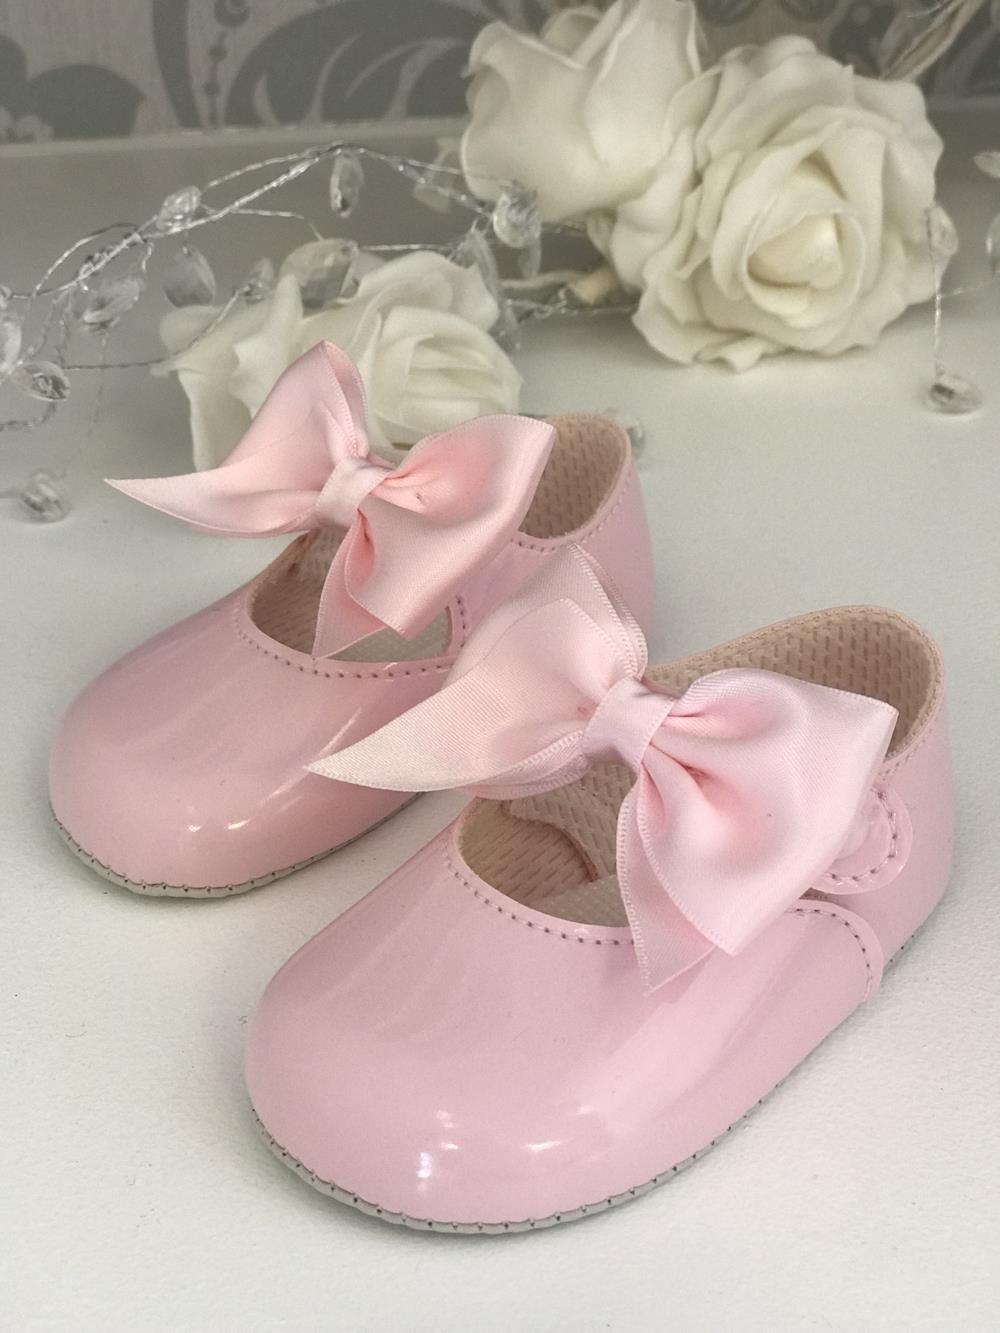 Pink shoes with bows on the top from Betsy Bootique in Bognor